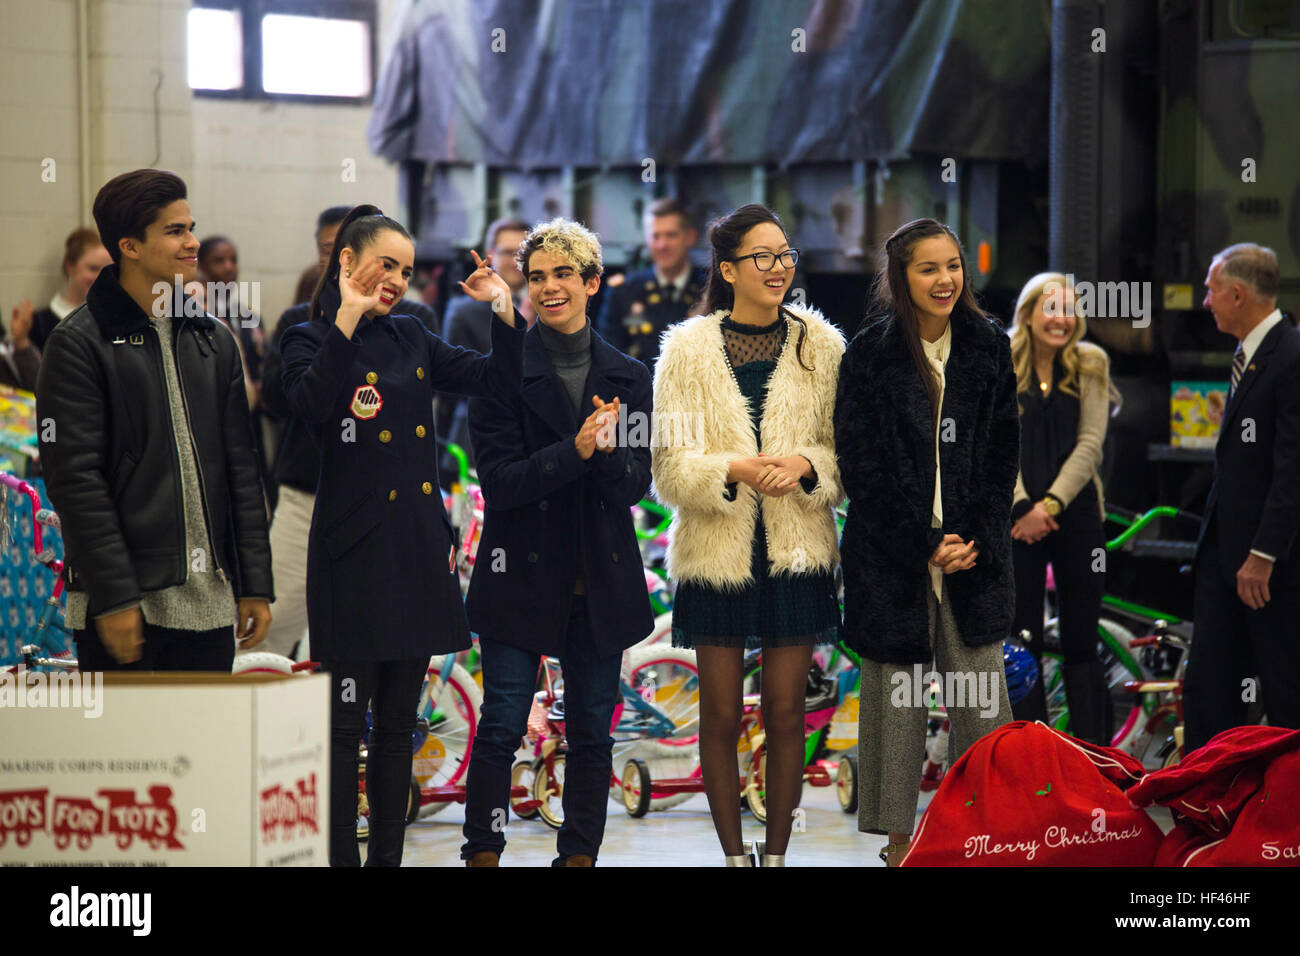 Disney stars make an appearance at a Toys for Tots event at Joint Base Anacostia-Bolling, Washington D.C., Dec. Stock Photo